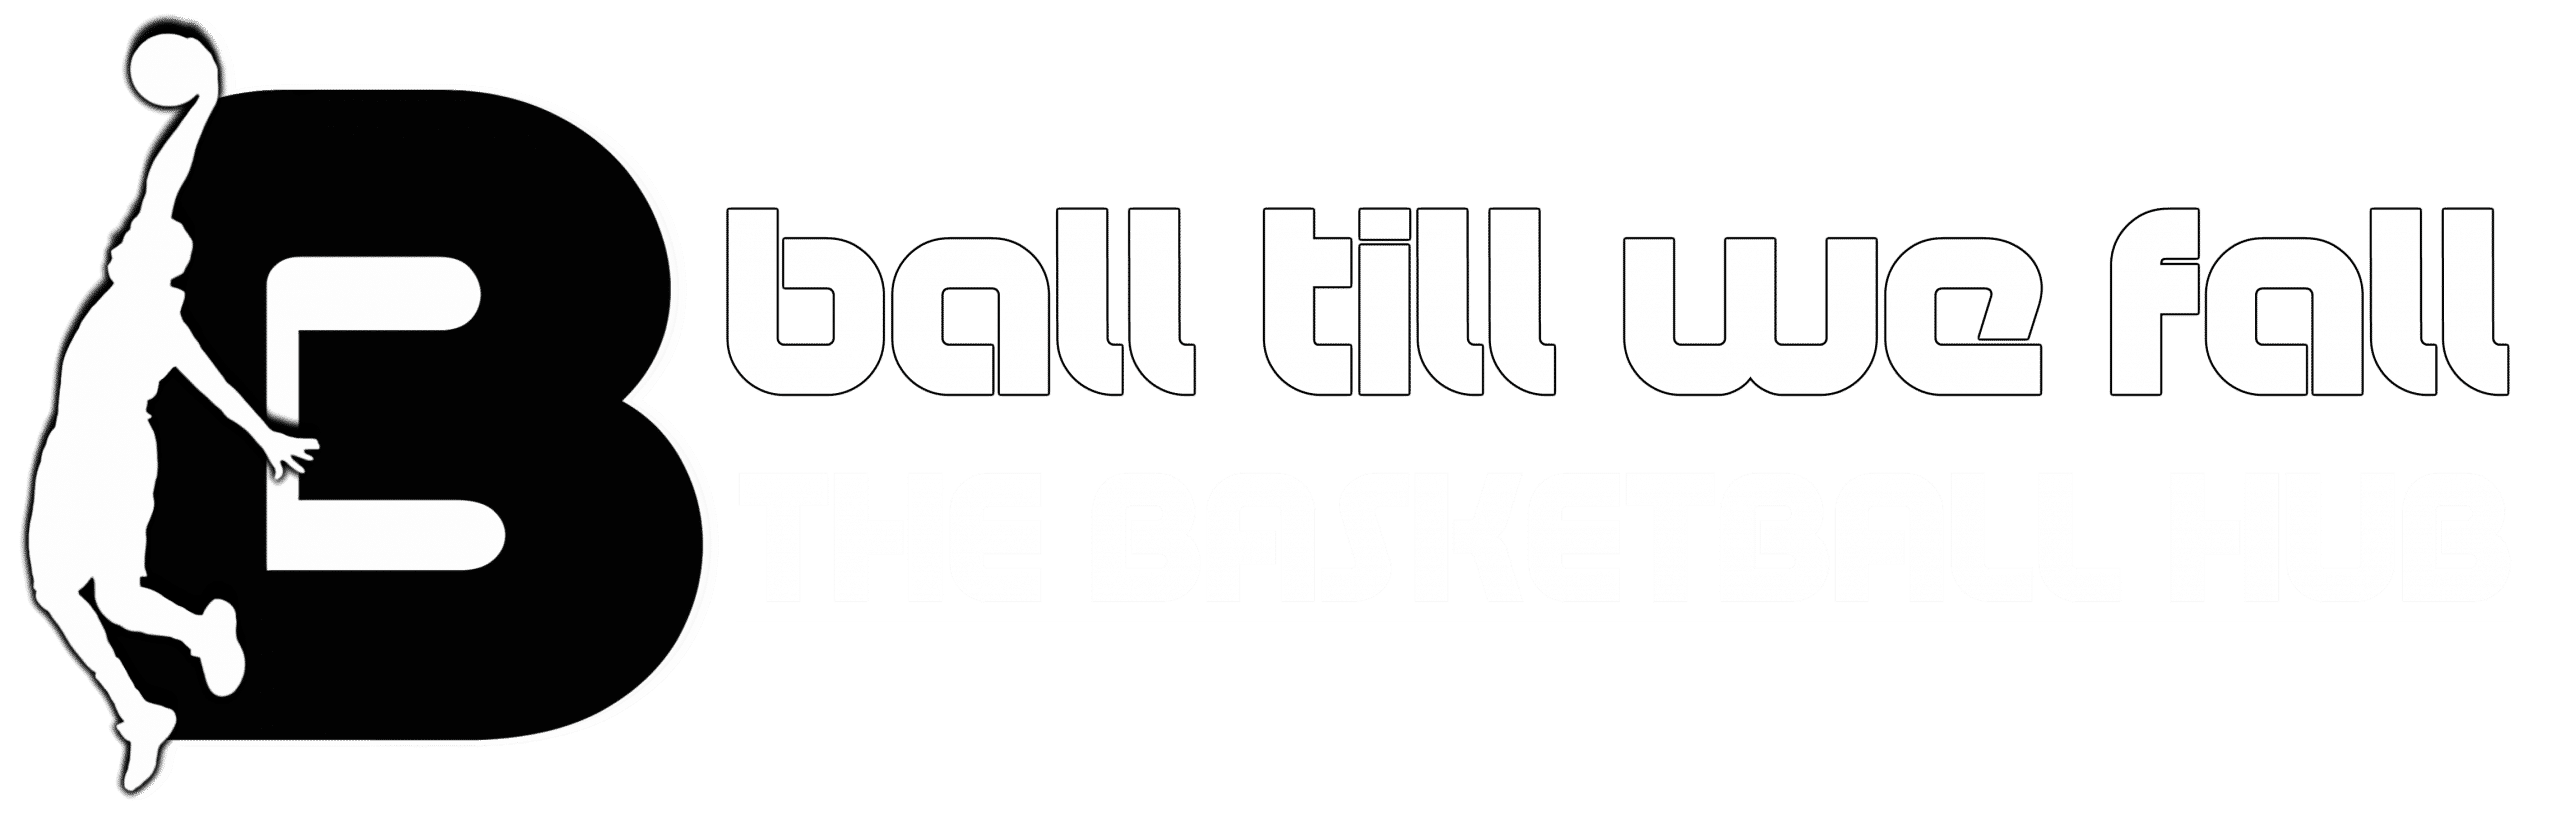 The #1 Basketball Hub : Ball Till We Fall